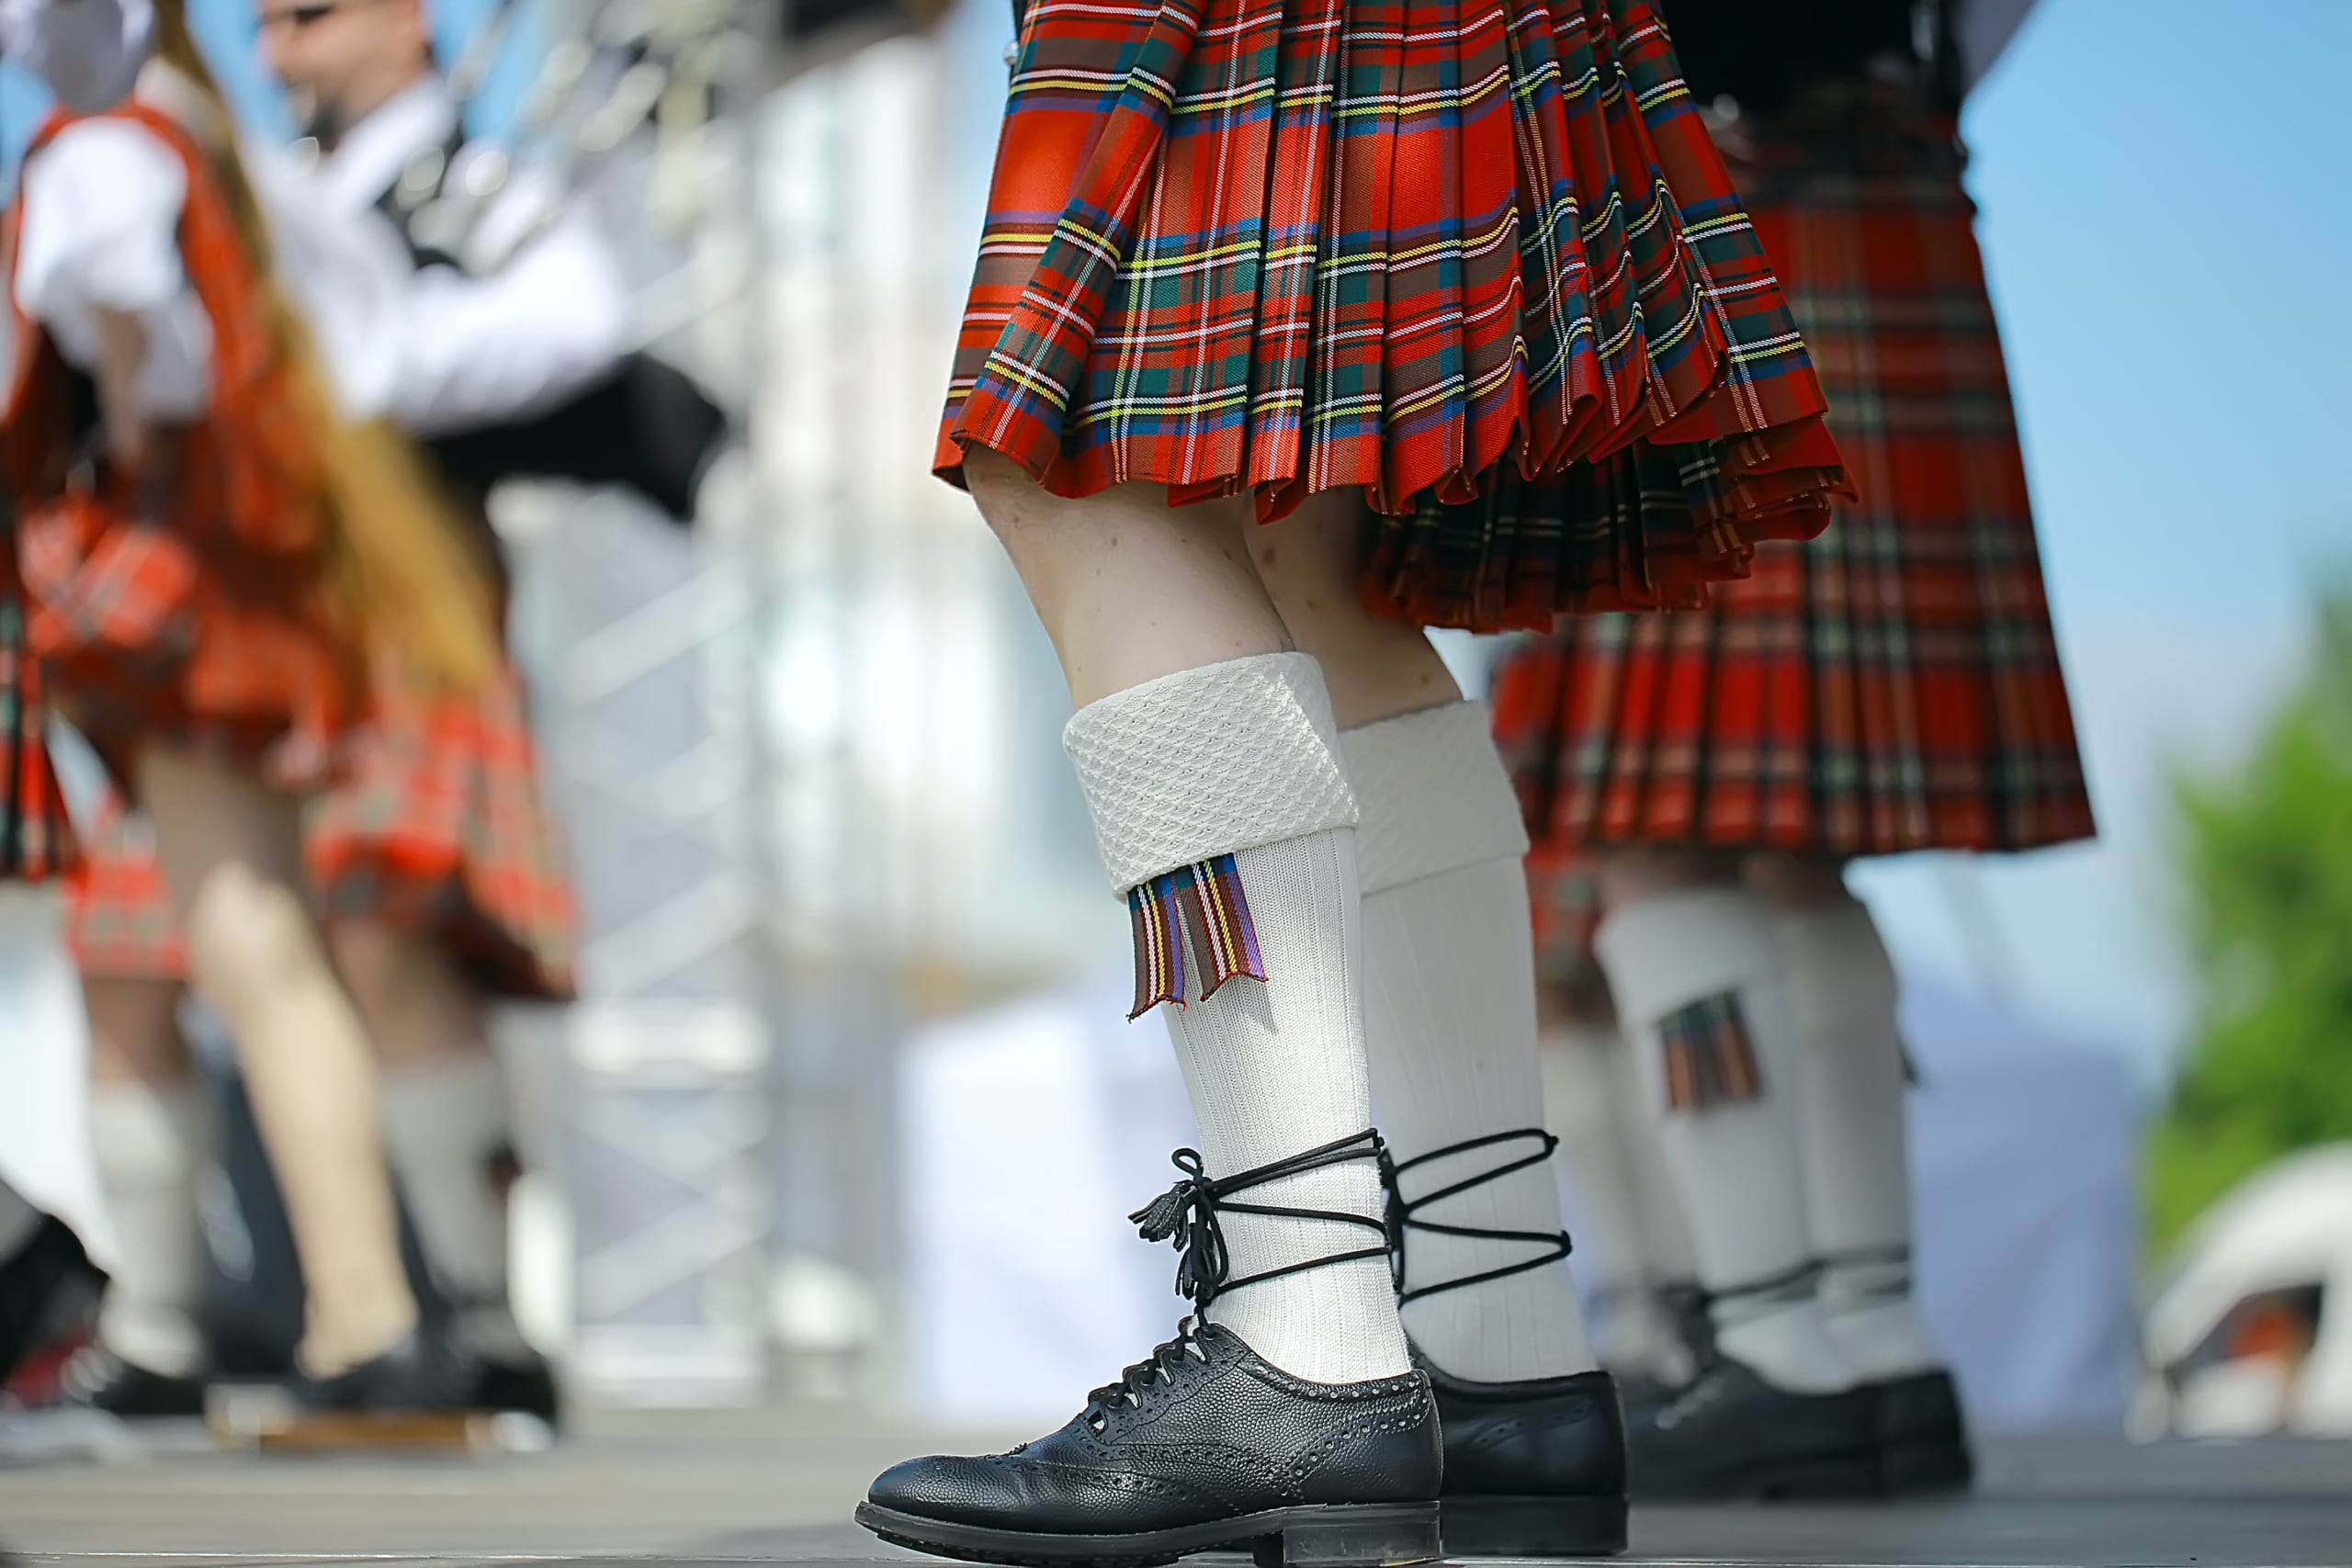 feet in Scottish skirts, the Scottish National Orchestra plays on St. Patrick's Day, holiday costumes for men